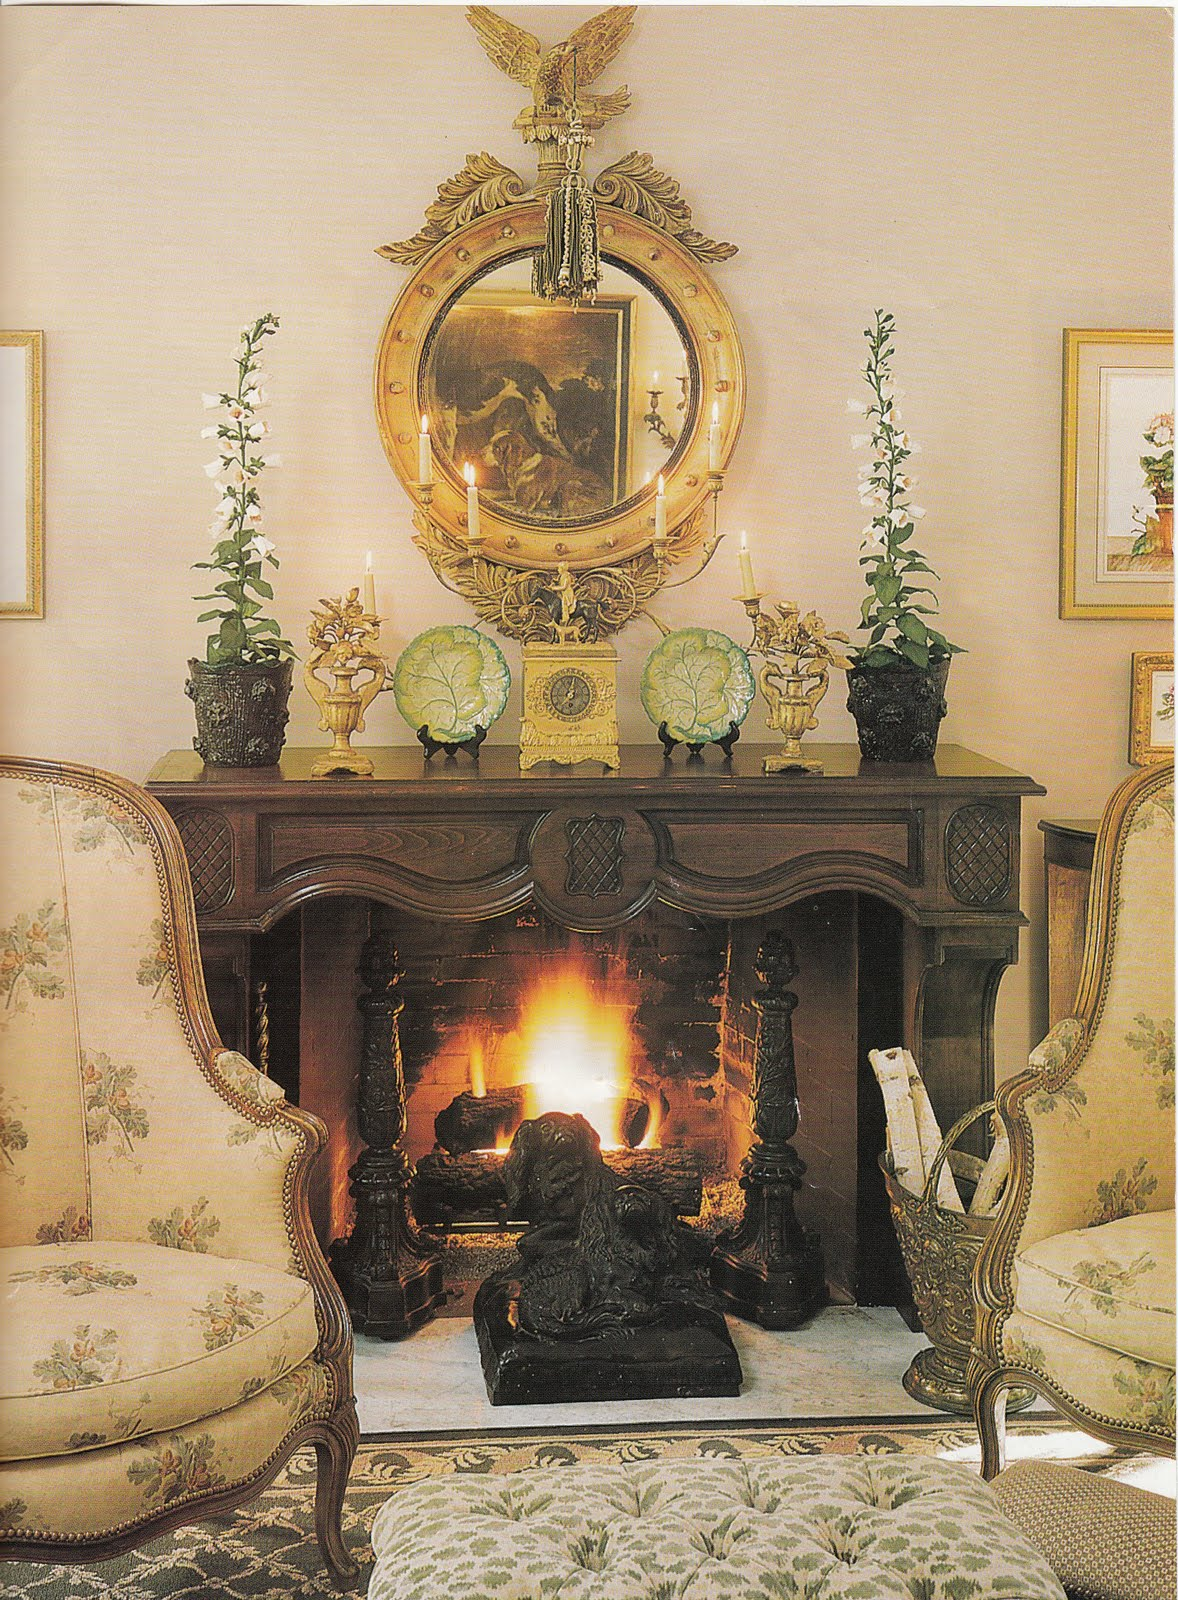 French Country Fireplace Country Mantel Decor Mantel Decor For Autumn